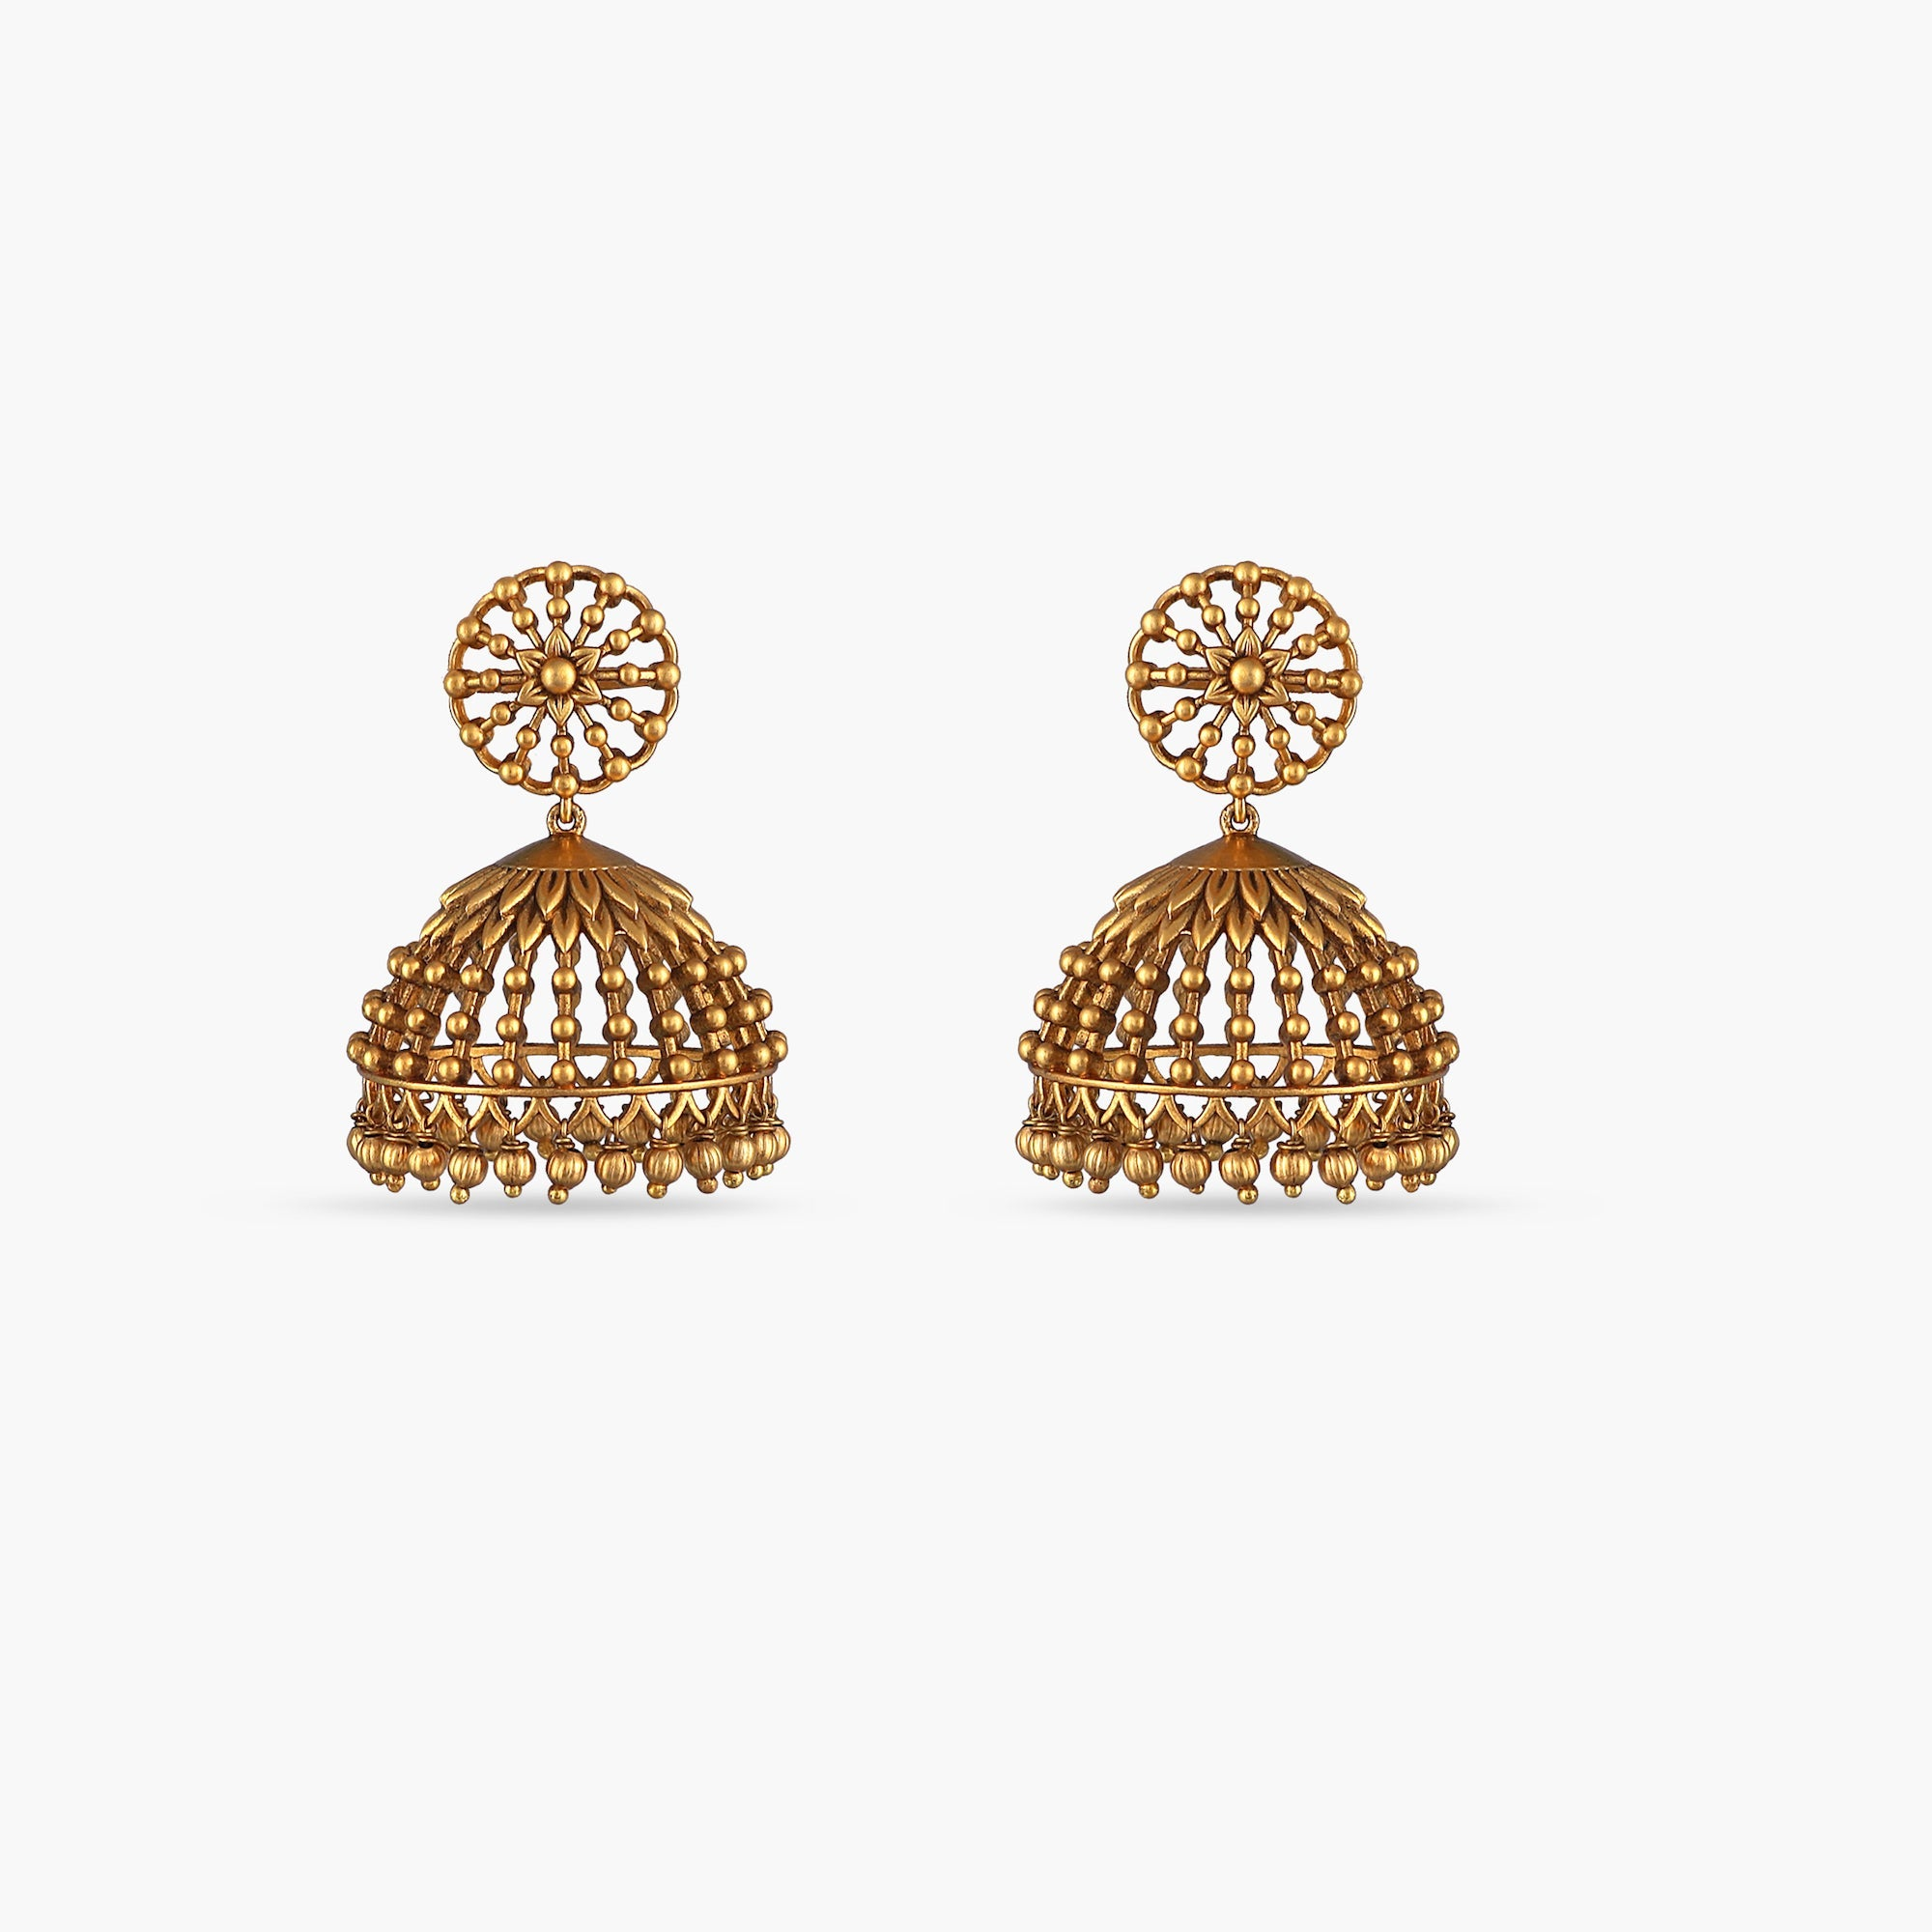 Gagini Antique Jhumka Earrings